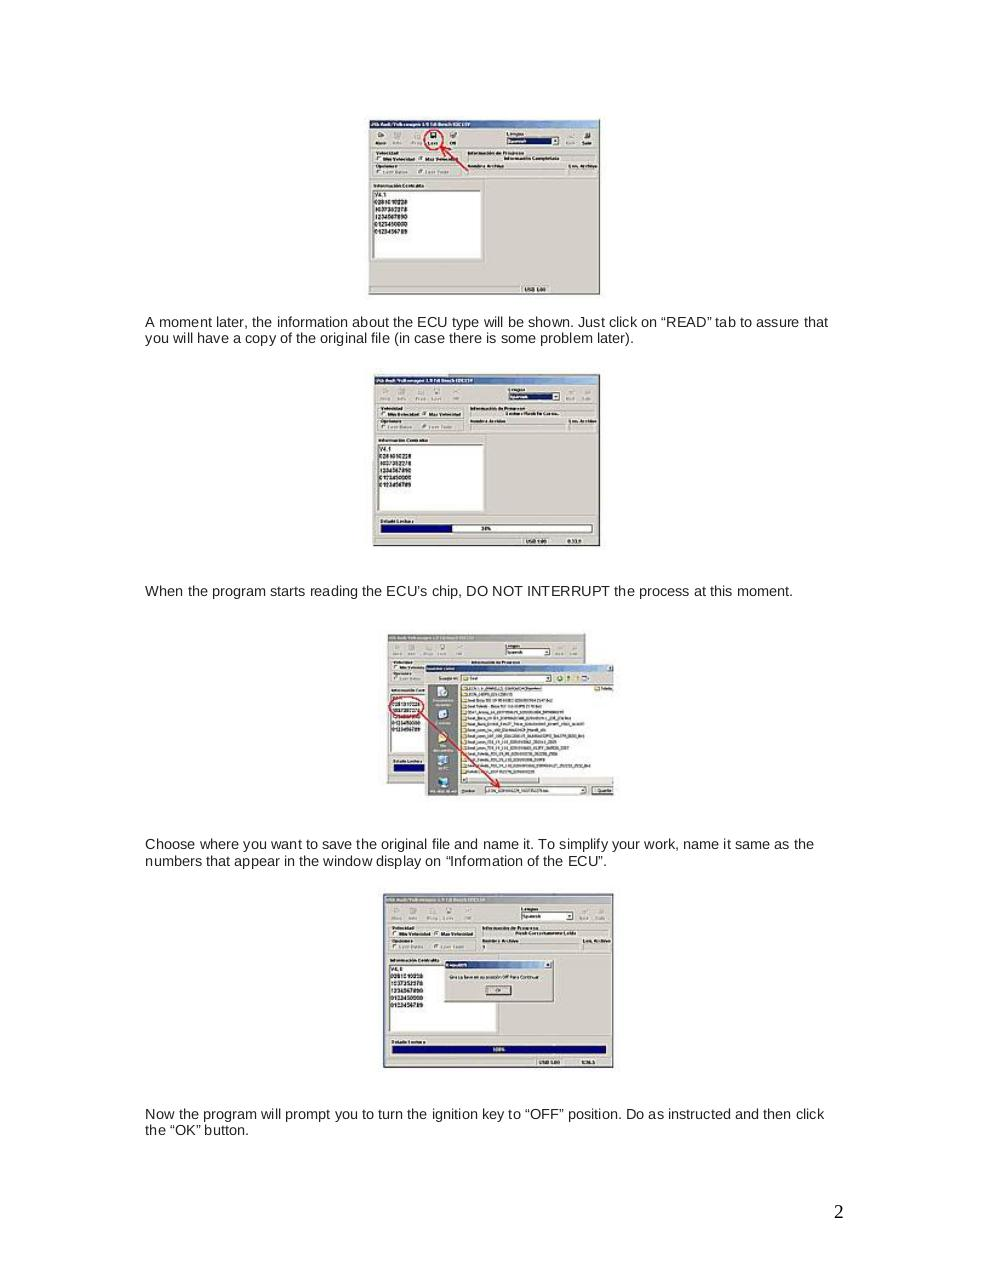 KWP2000 PLUS Operation Manual: by Autosenz - kwp2000-user-manual ...